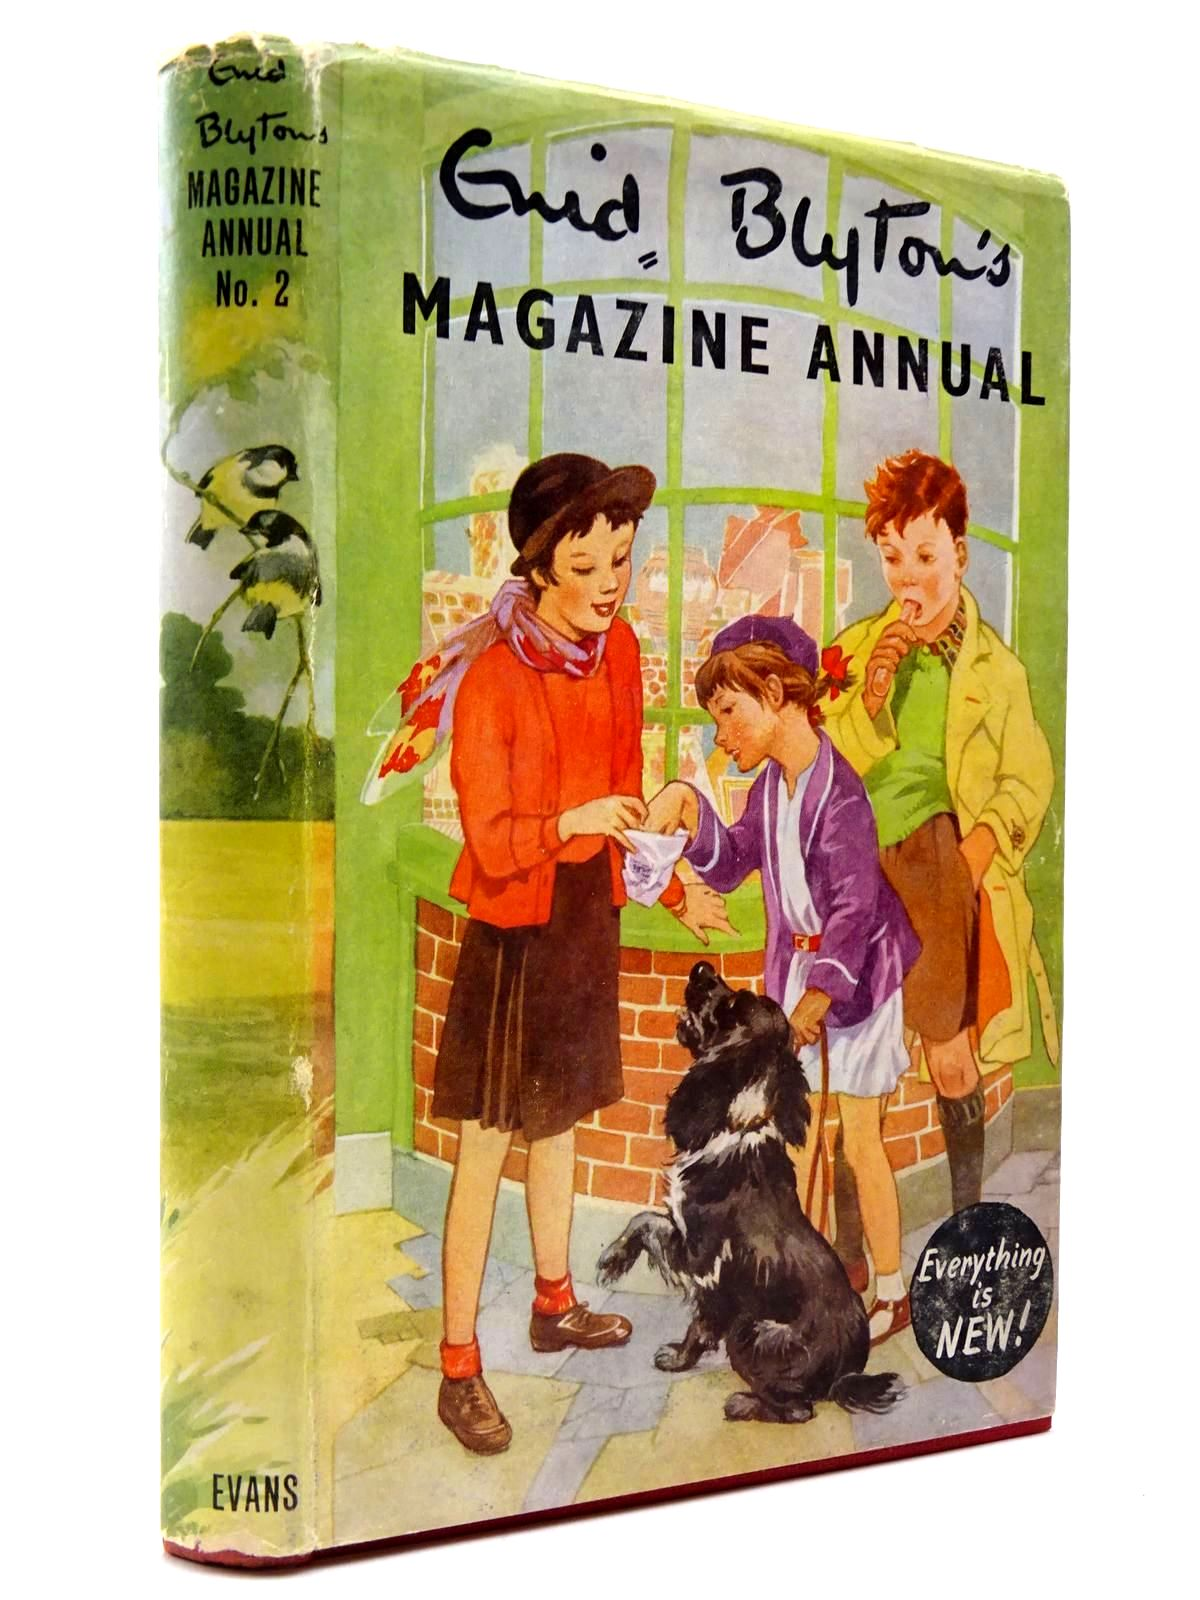 Photo of ENID BLYTON'S MAGAZINE ANNUAL NO. 2 written by Blyton, Enid published by Evans Brothers Limited (STOCK CODE: 2130438)  for sale by Stella & Rose's Books